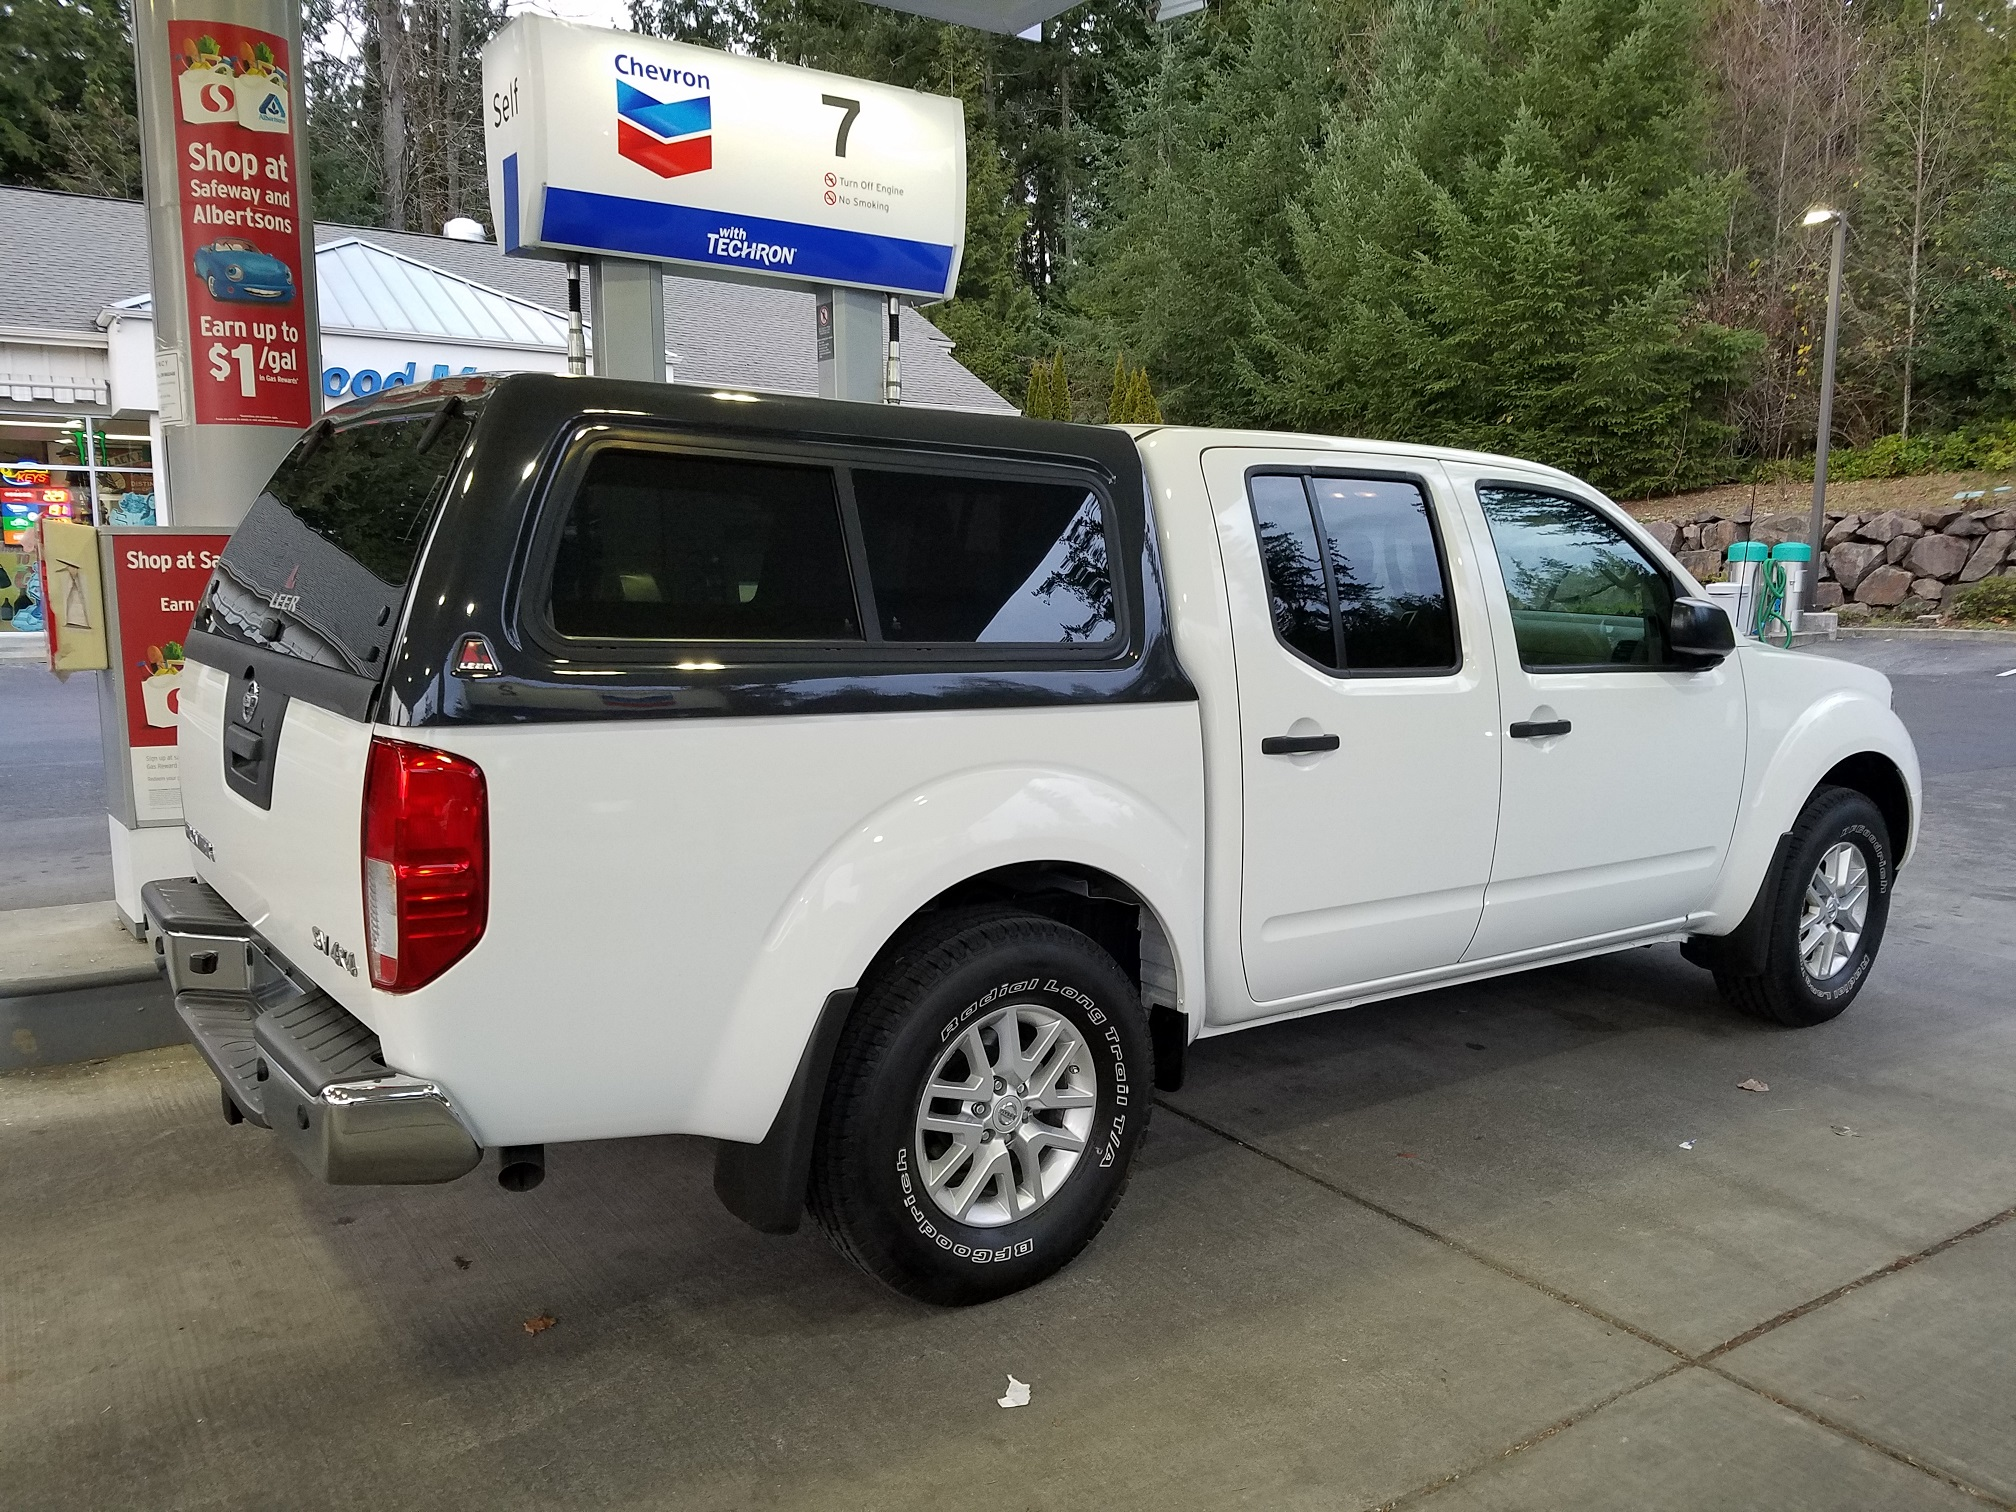 Should I sell my canopy? How much? - Nissan Frontier Forum